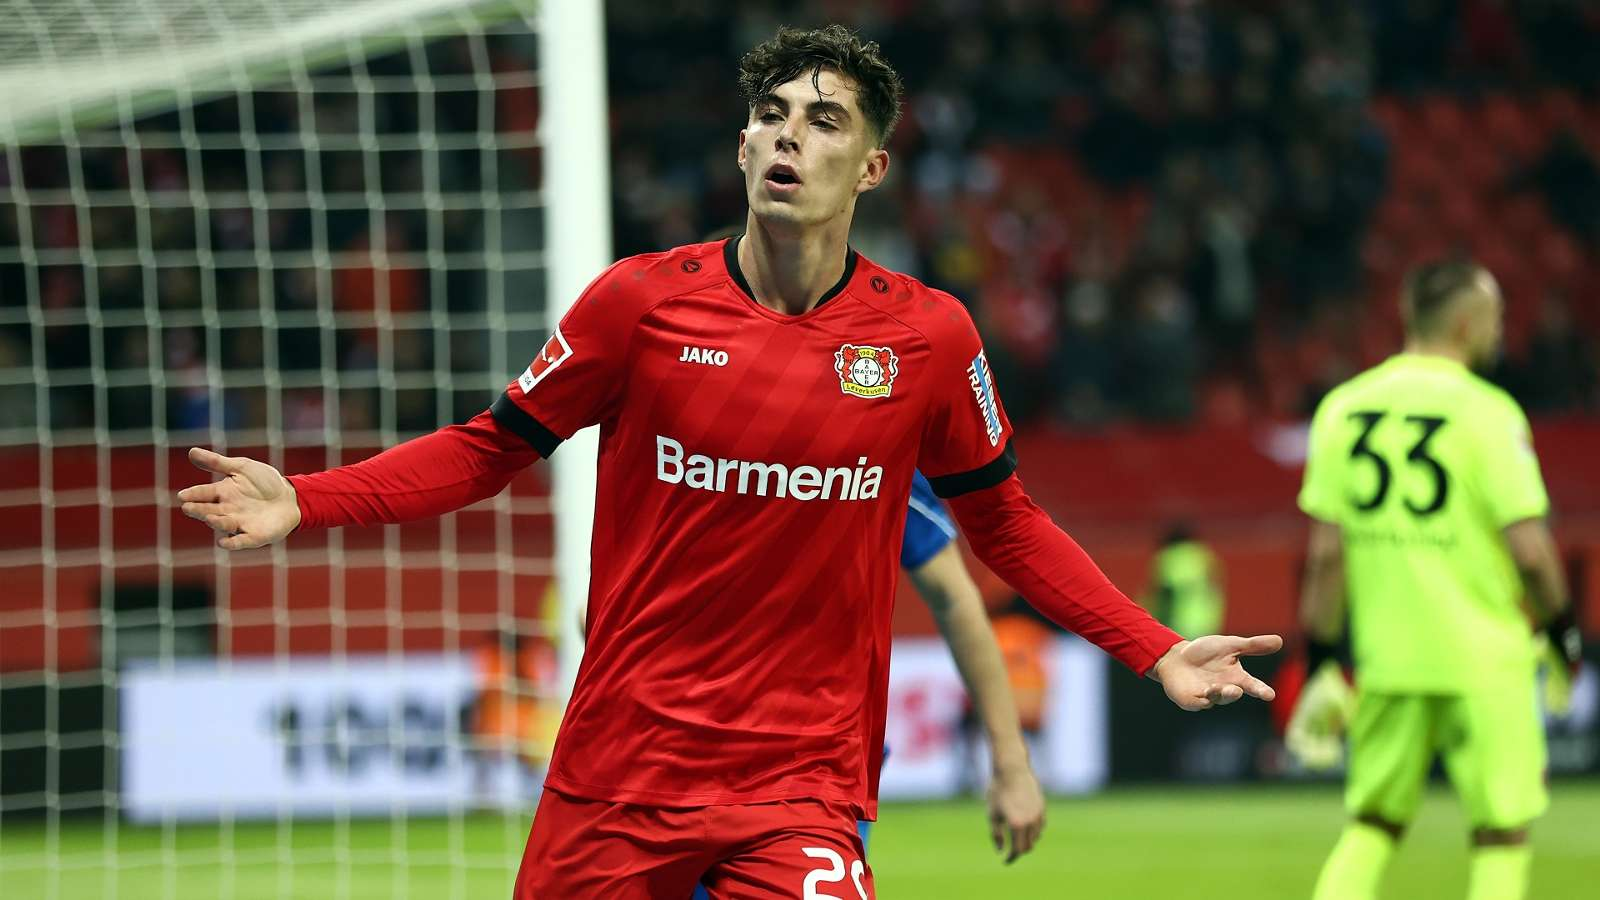 Leverkusen are aware of the huge interest in Kai Havertz